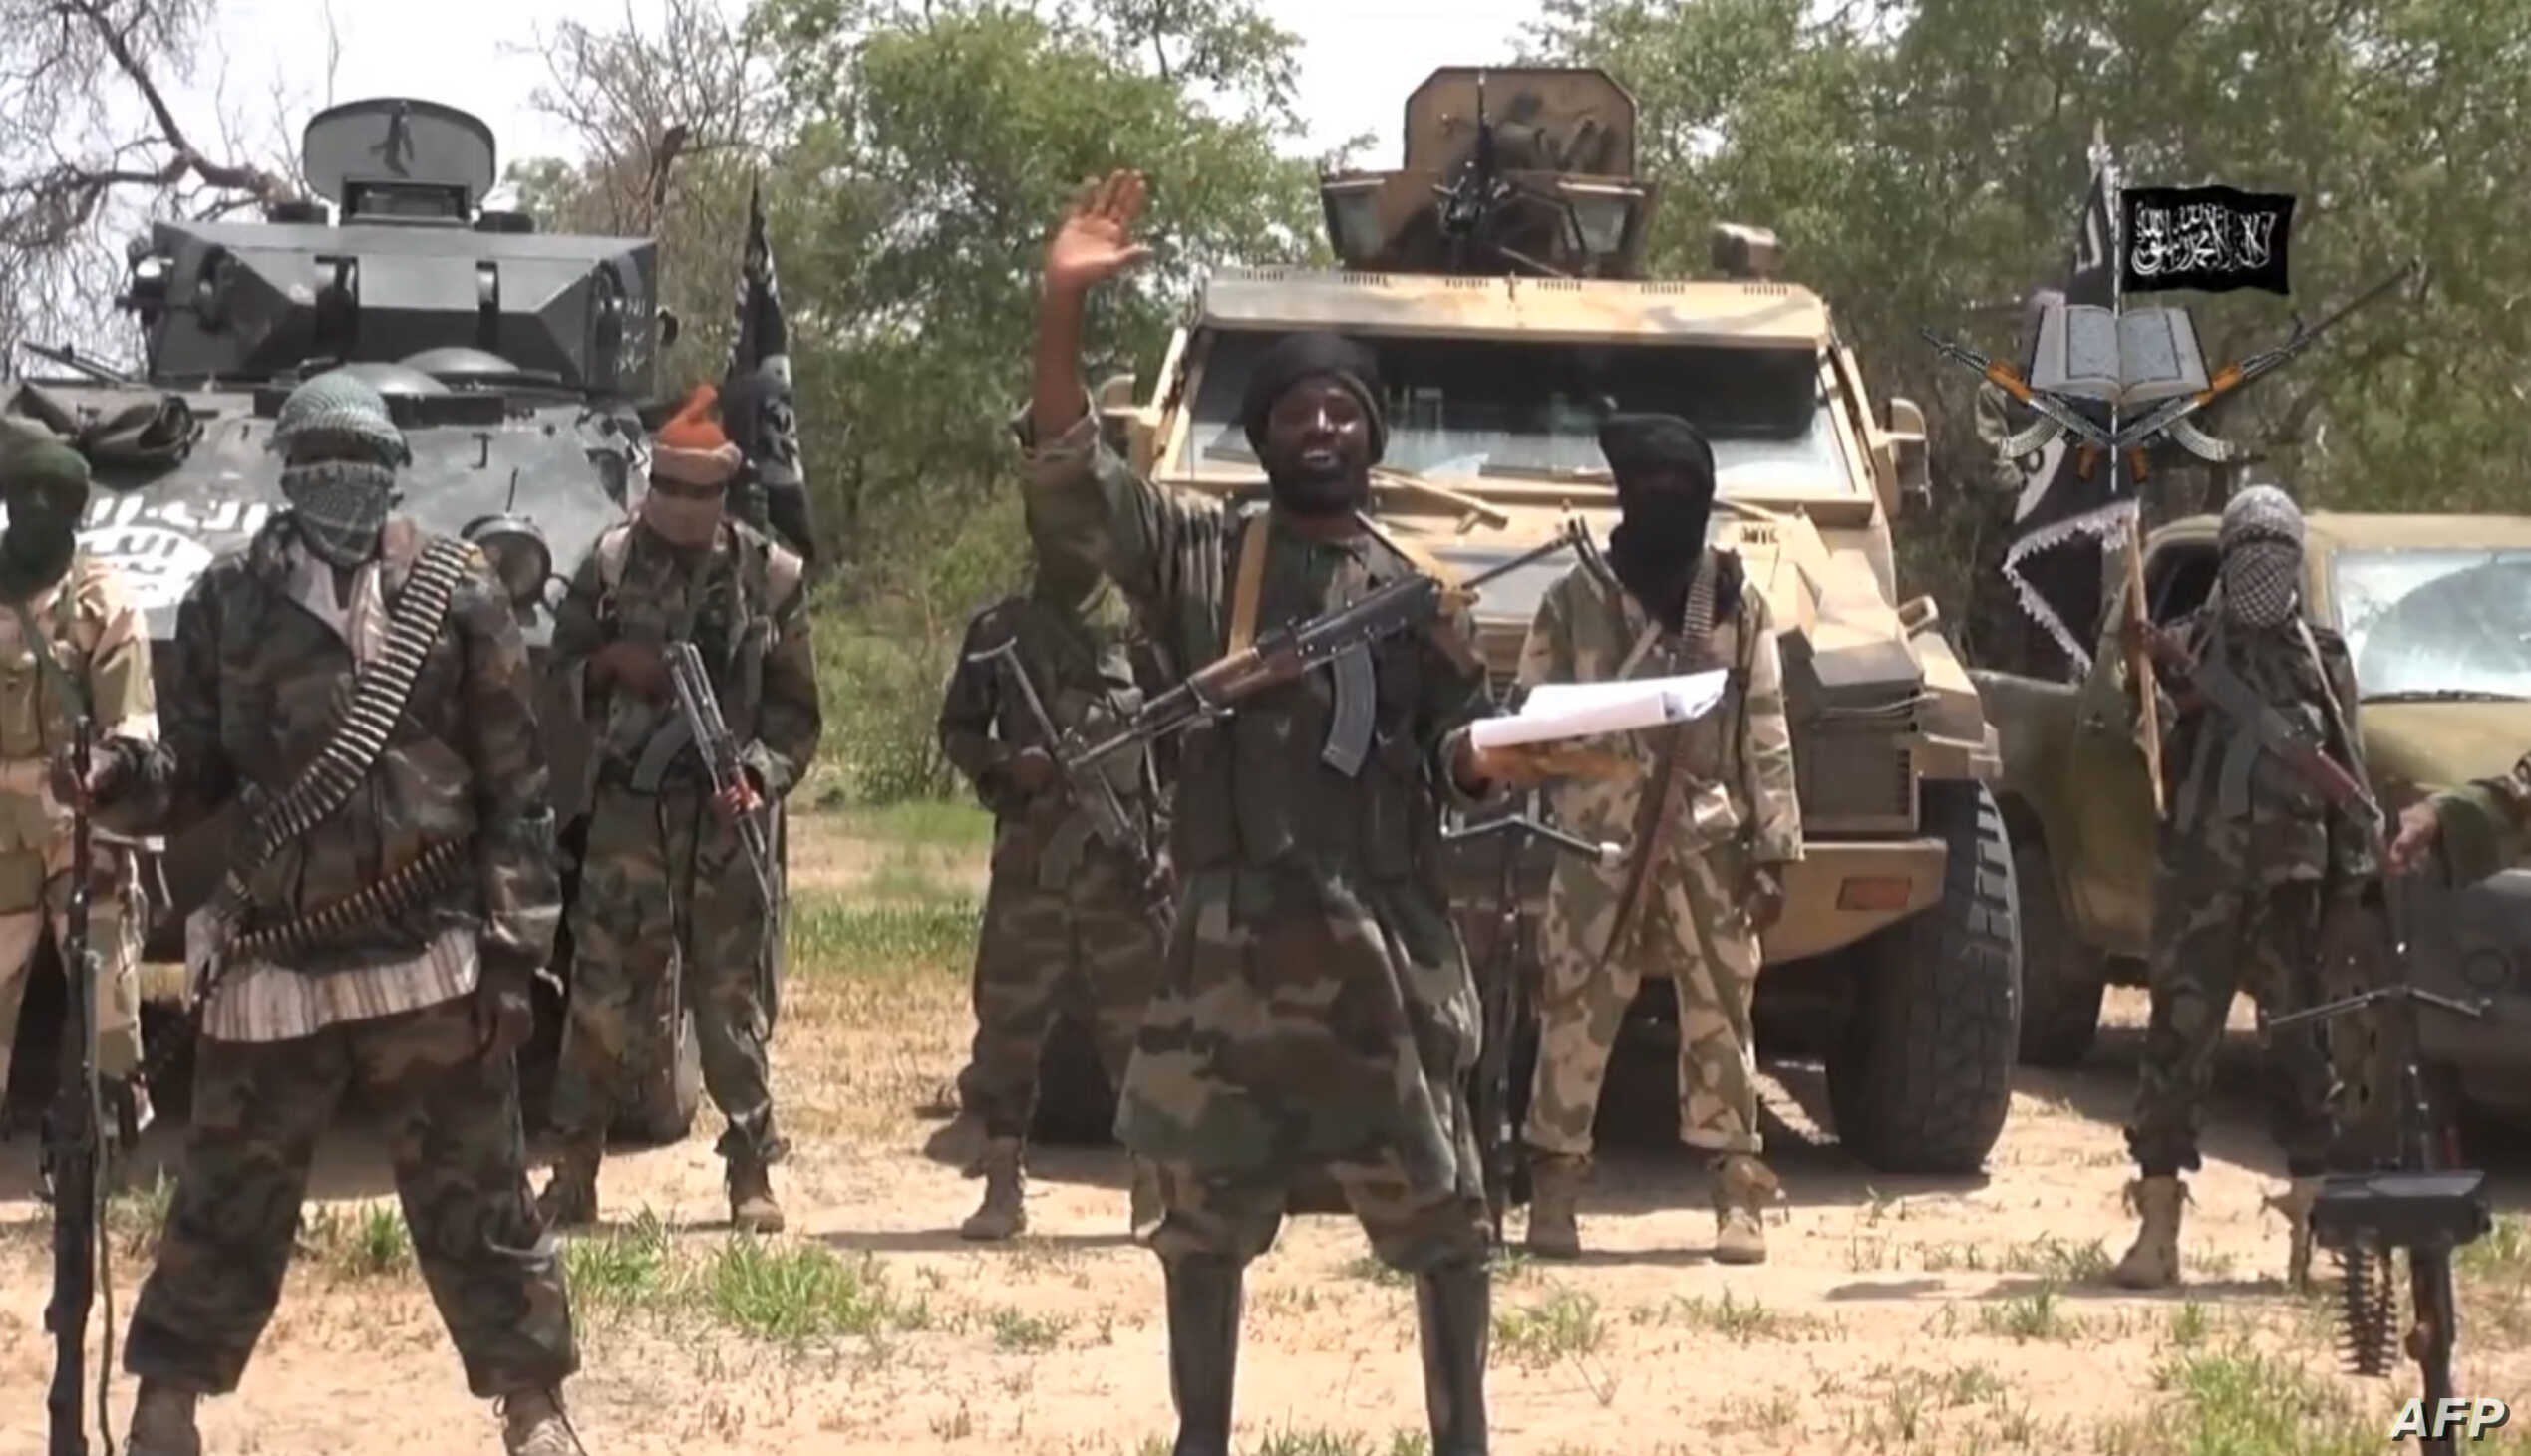 Cameroon beefing up security on its border with Nigeria on Boko Haram attacks